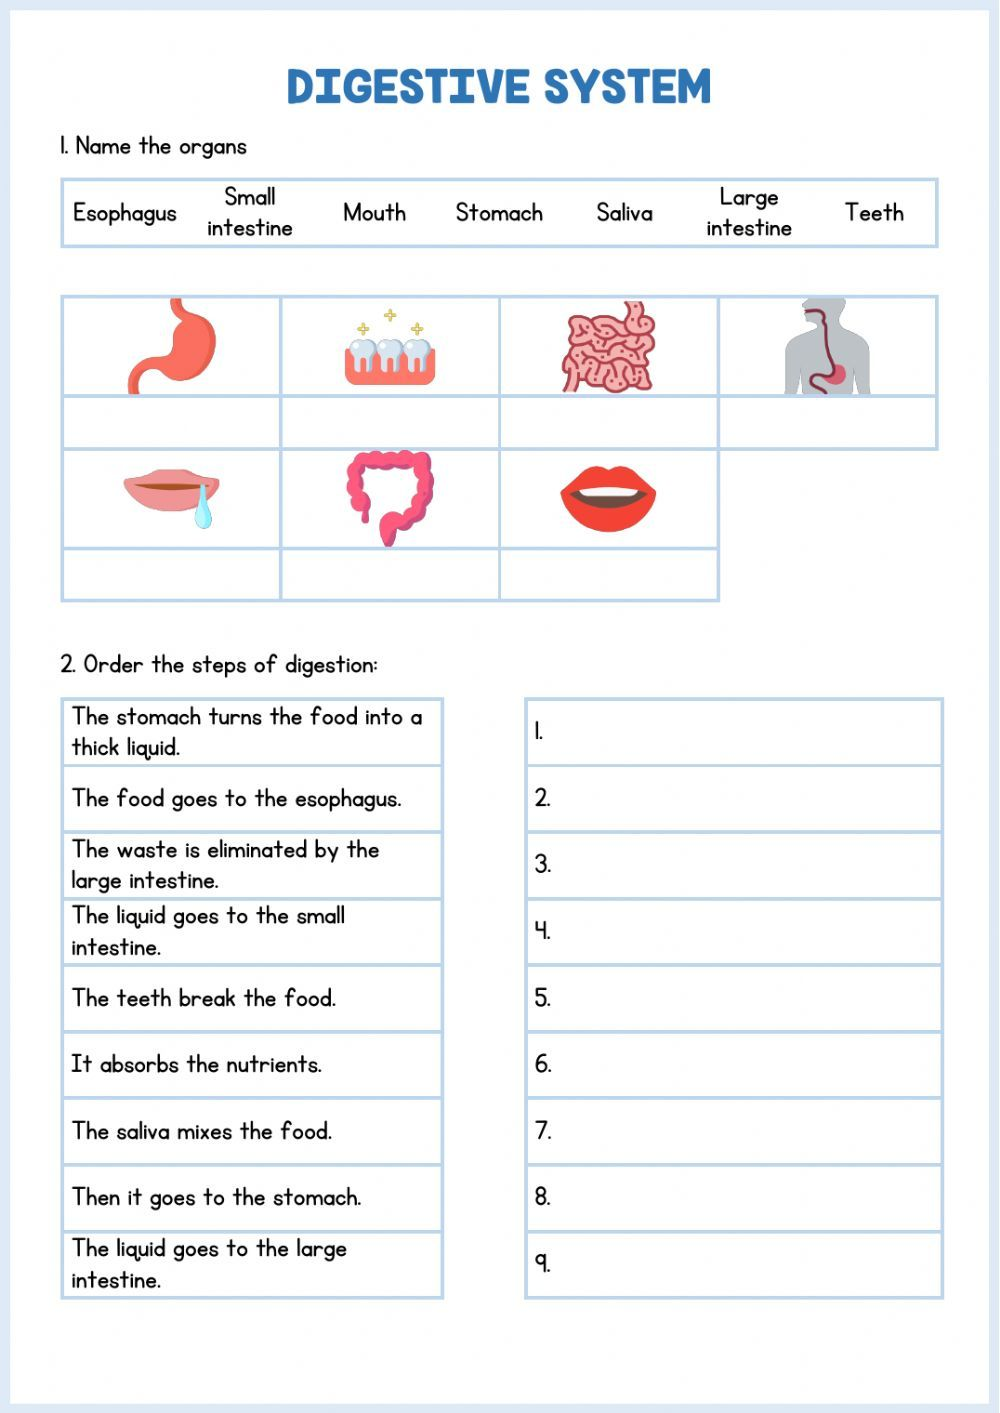 Digestive System Interactive And Downloadable Worksheet You Can Do The Exercises On In 2021 Body Systems Worksheets Digestive System Lessons Digestive System For Kids